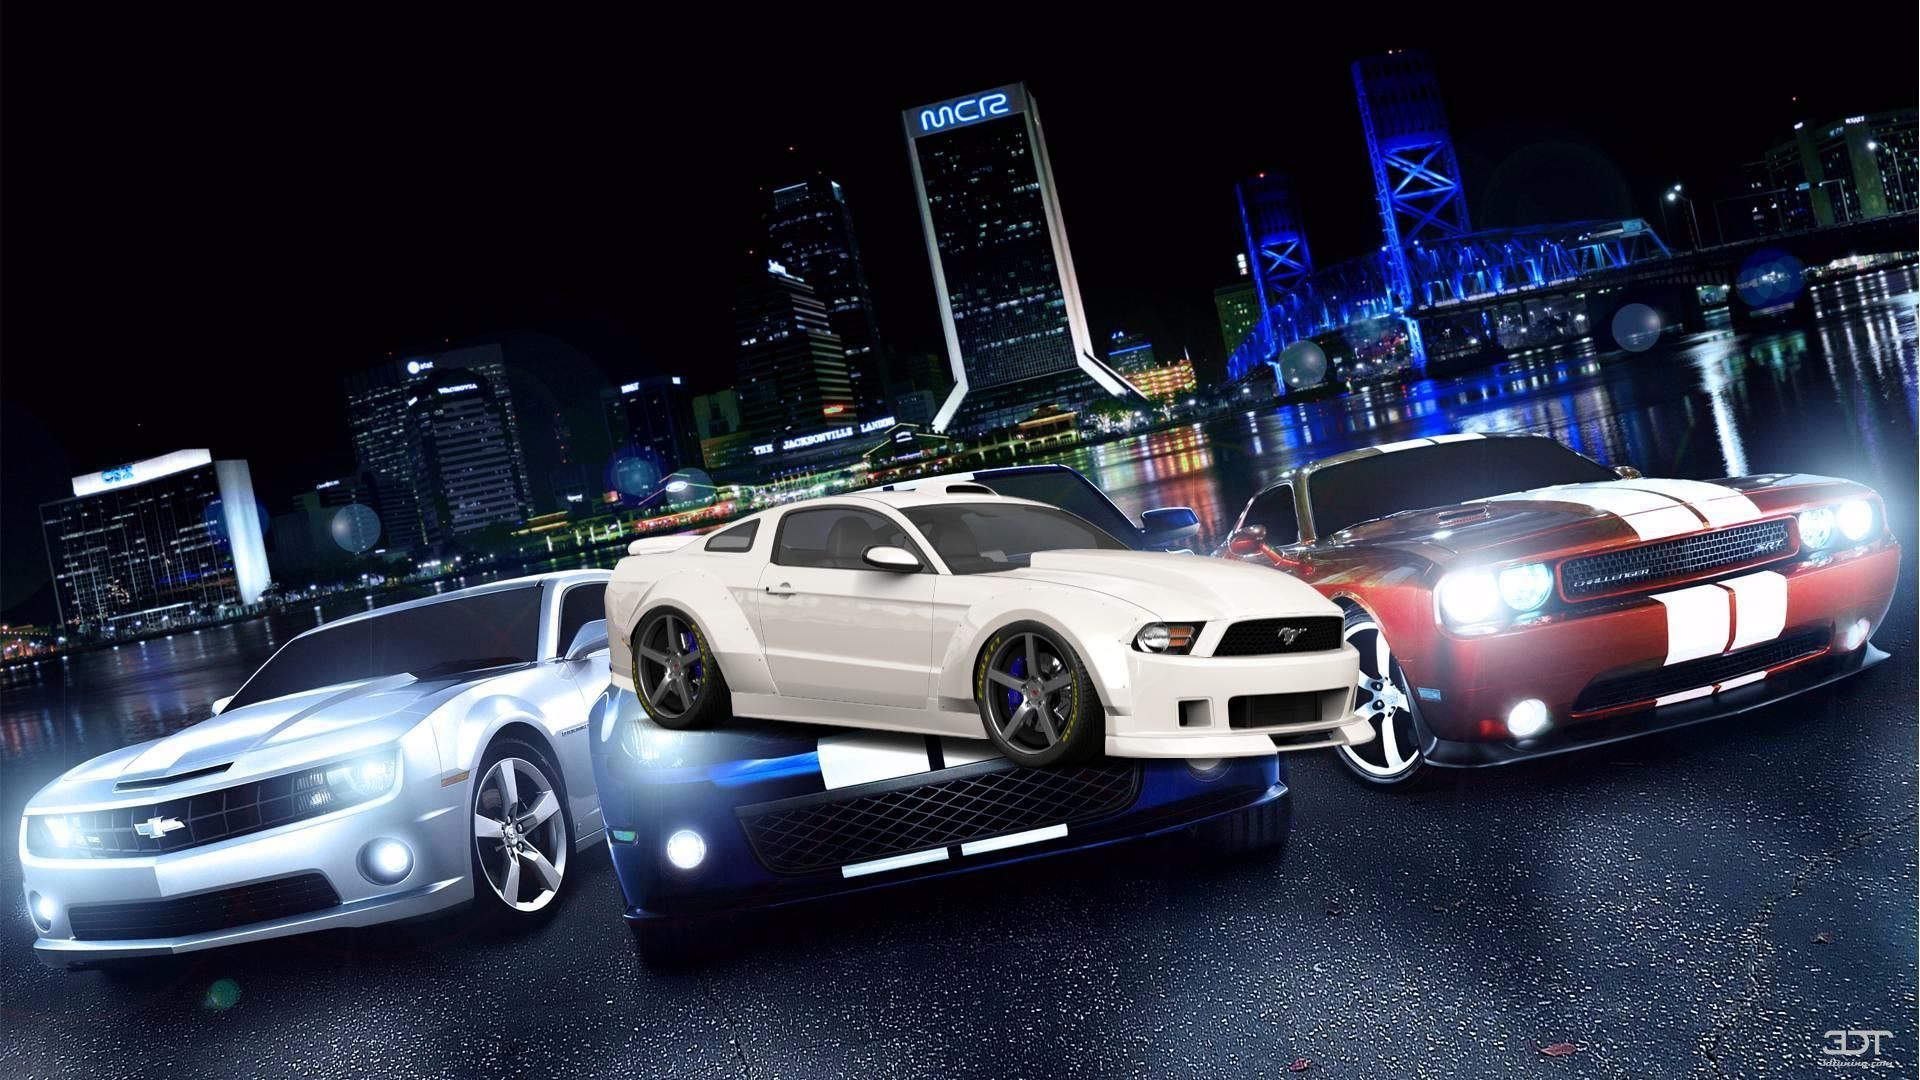 Come ti sembra il mio tuning ford mustang 2011 in 3dtuning 3dtuning